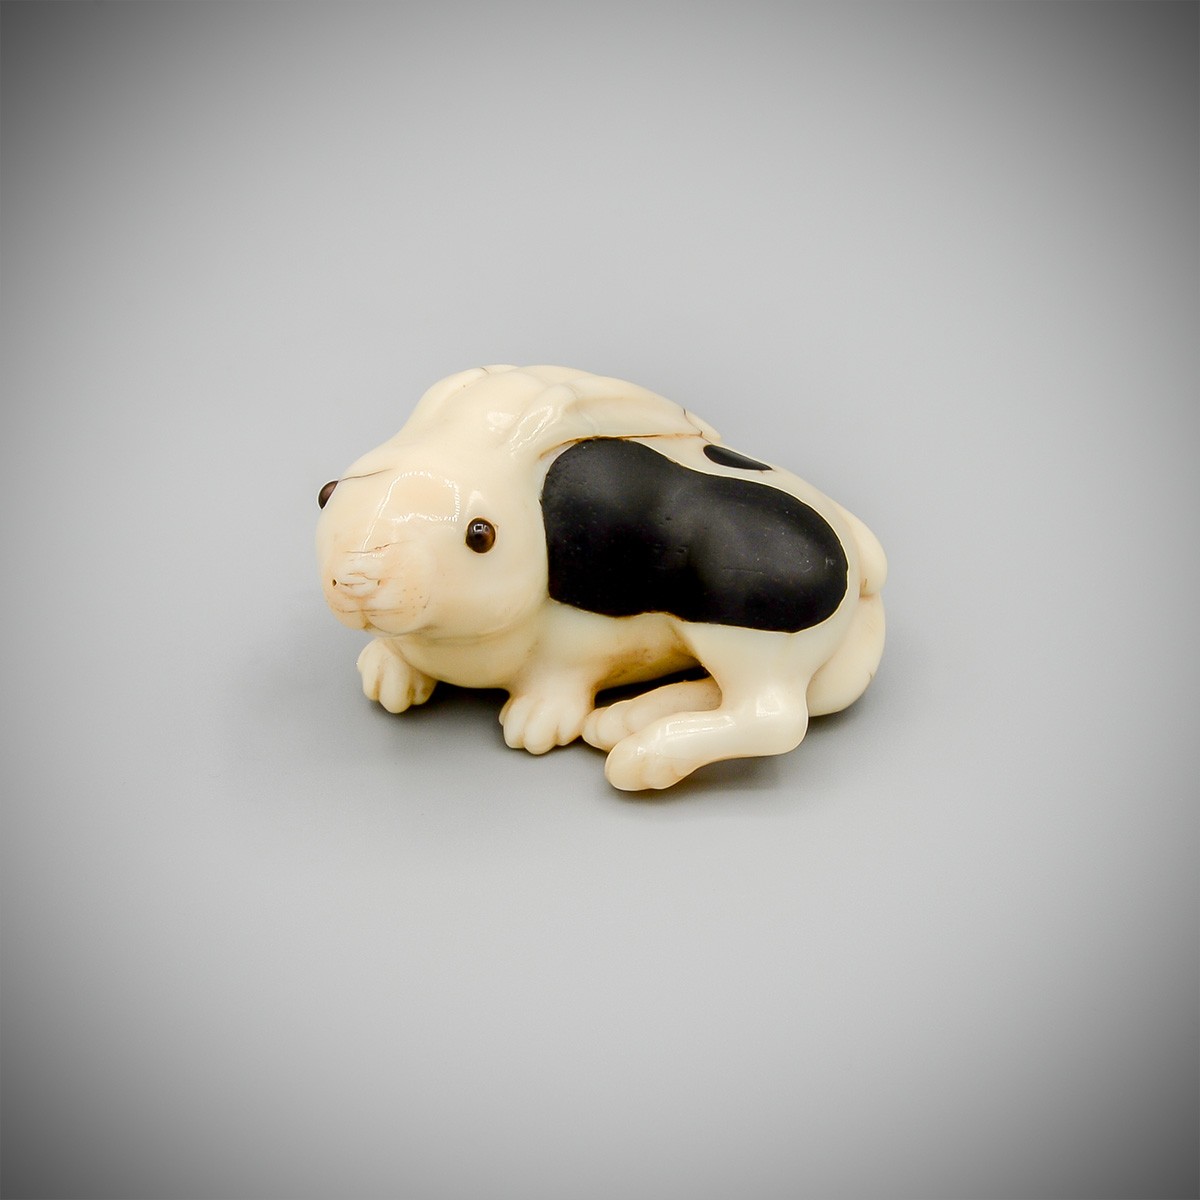 An inlaid narwhal ivory netsuke of a hare or rabbit by Oshomitsu, MR3651_v.1-2